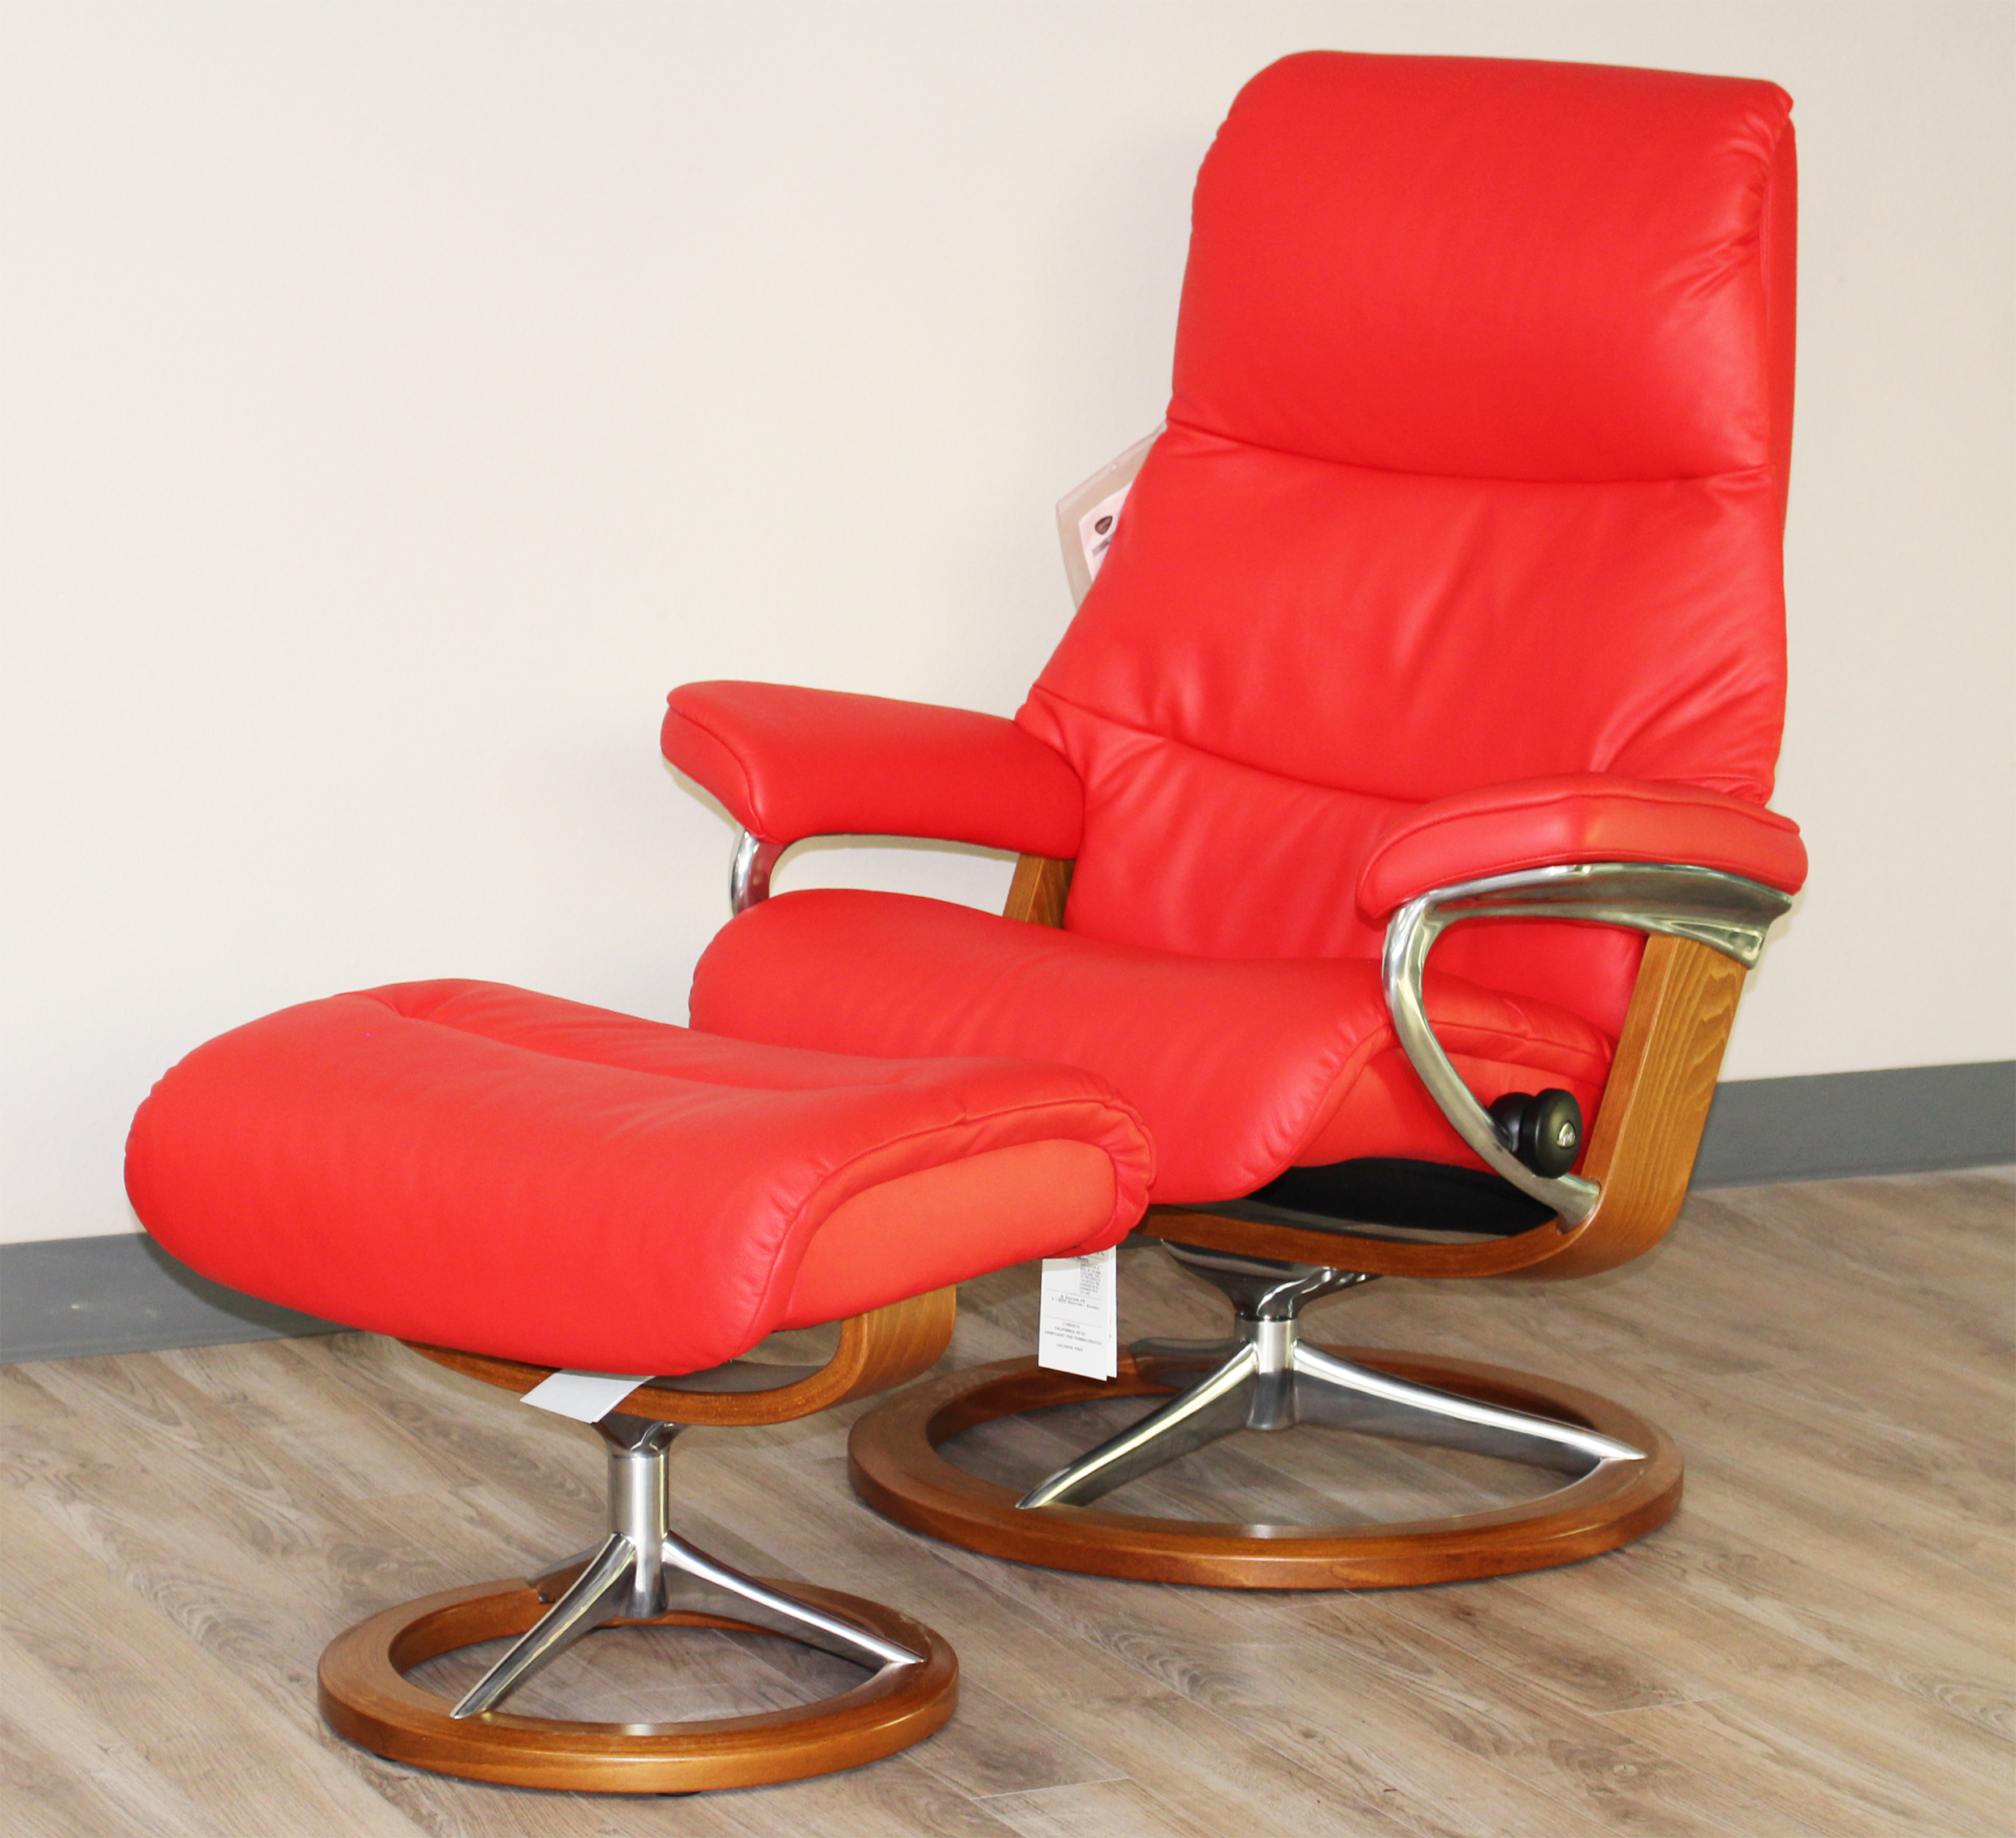 Stressless View Signature Base Medium Paloma Tomato Red Leather Recliner  Chair By Ekornes